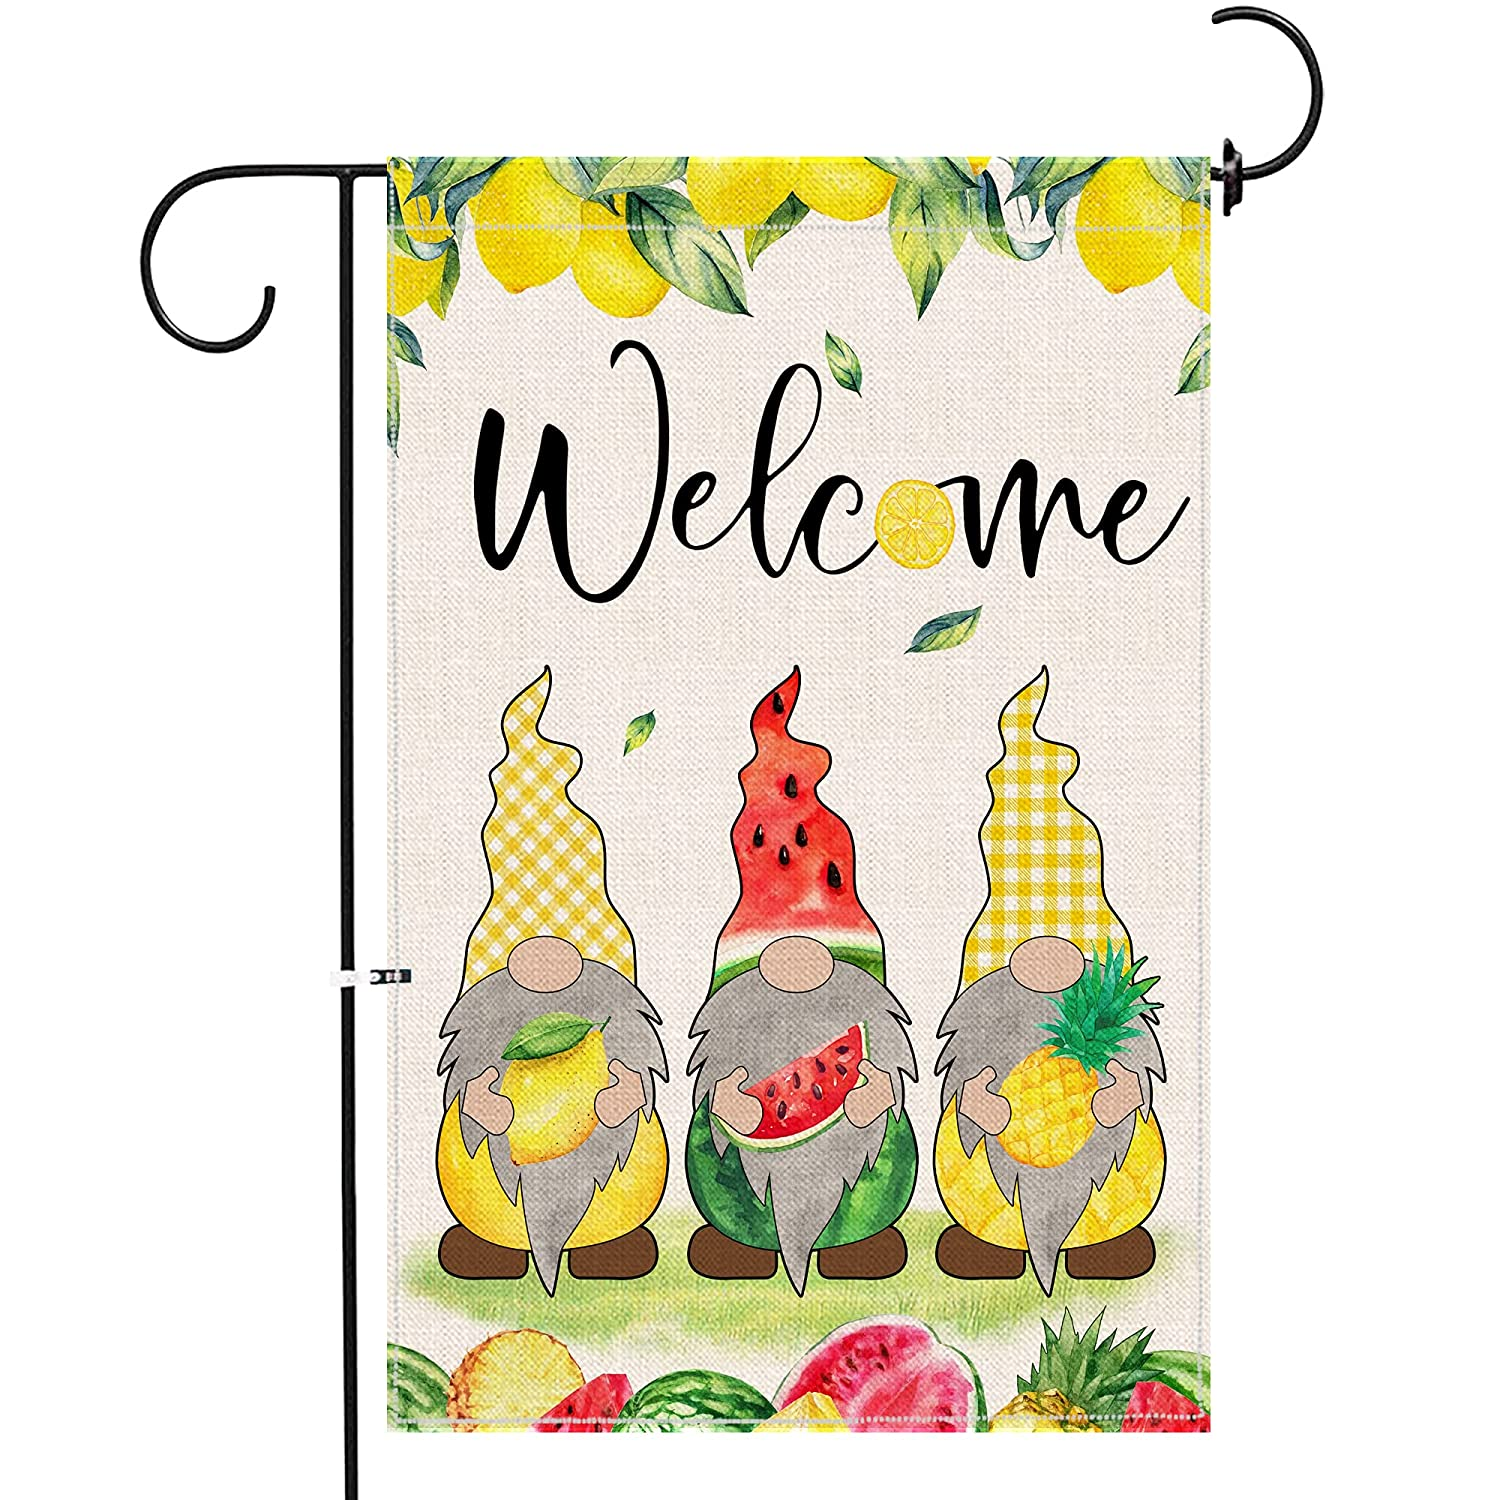 iloody Gnome Summer Garden Flag 12 X 18 Double Sided, Small Yard Summer Flag Colorful Lemon Watermelon Burlap Decor, Cute Welcome Garden Flag Seasonal Gnomes Sign for Outside Patio Lawn Home Outdoor